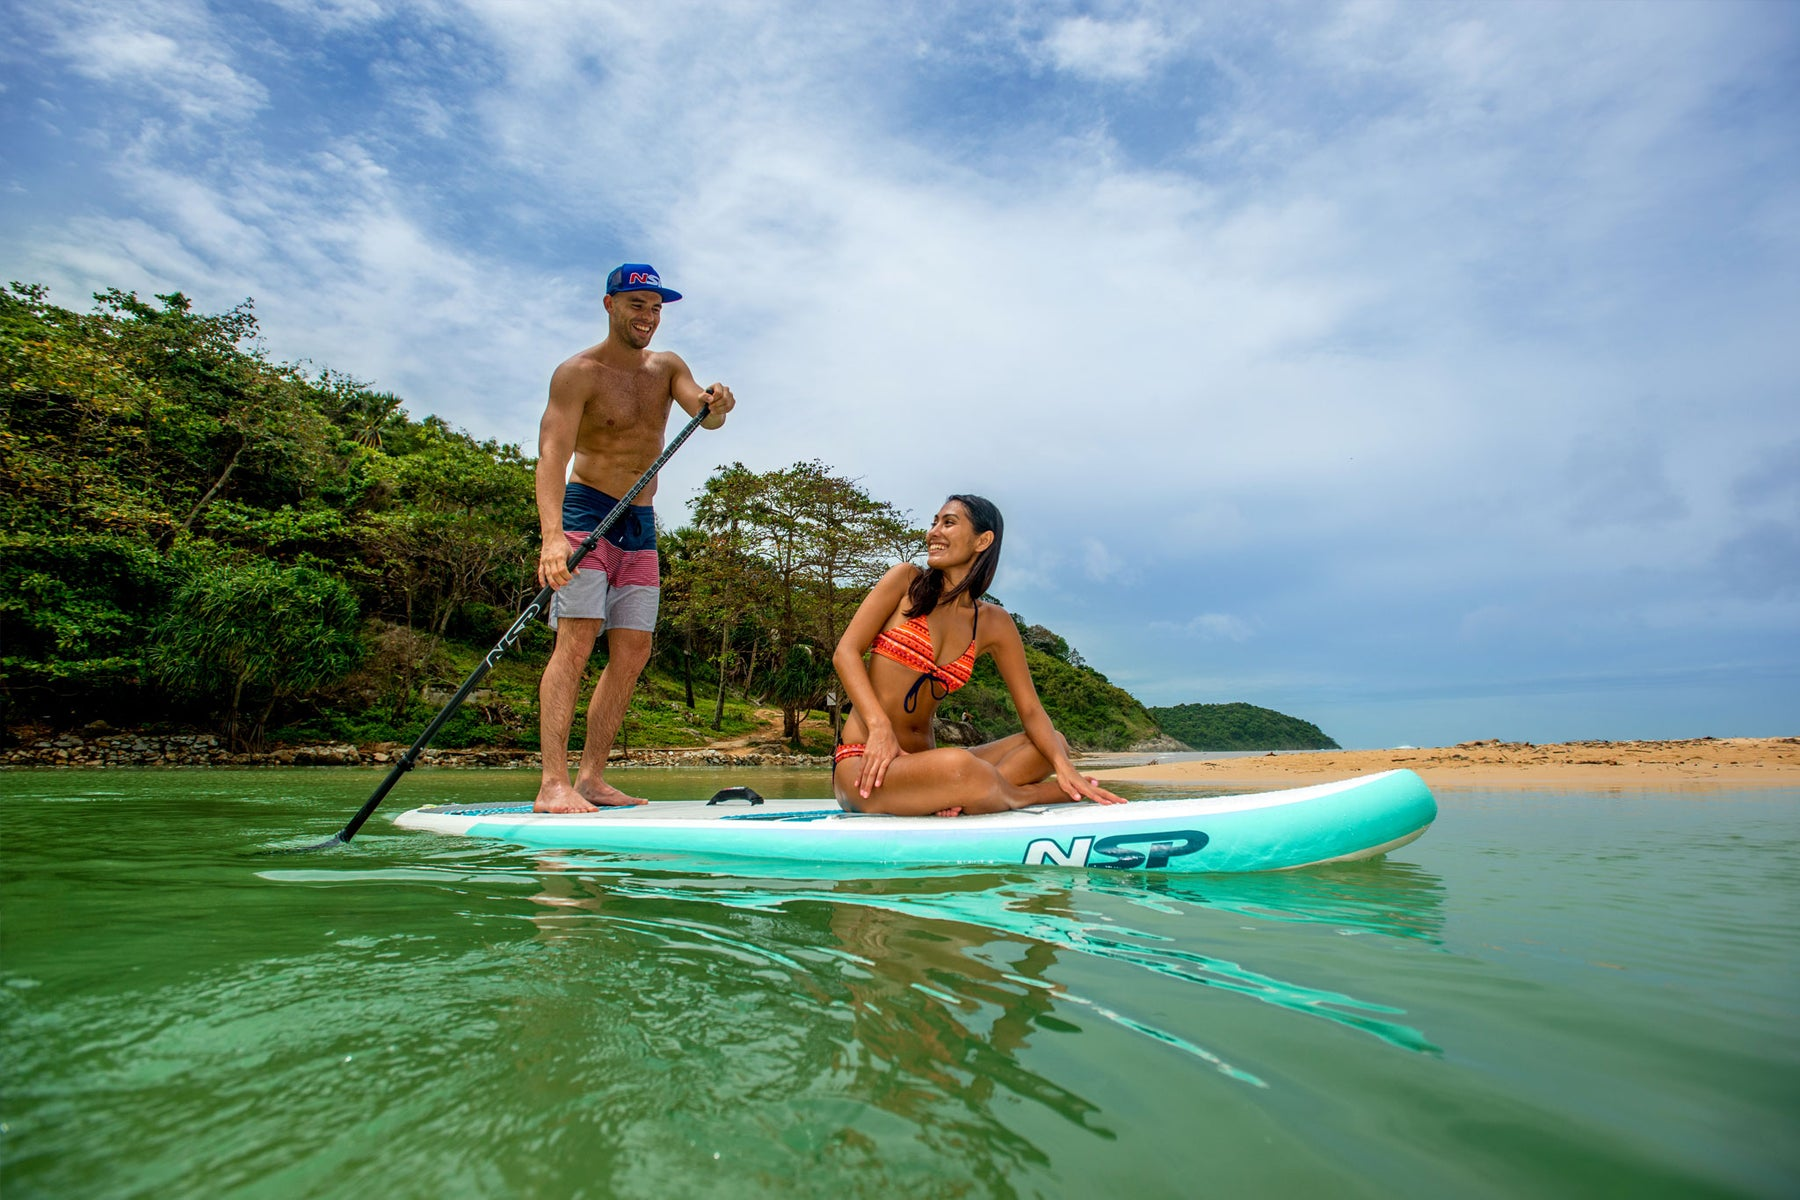 12 Performance Technique Tips for Stand Up Paddle (SUP) Boarders